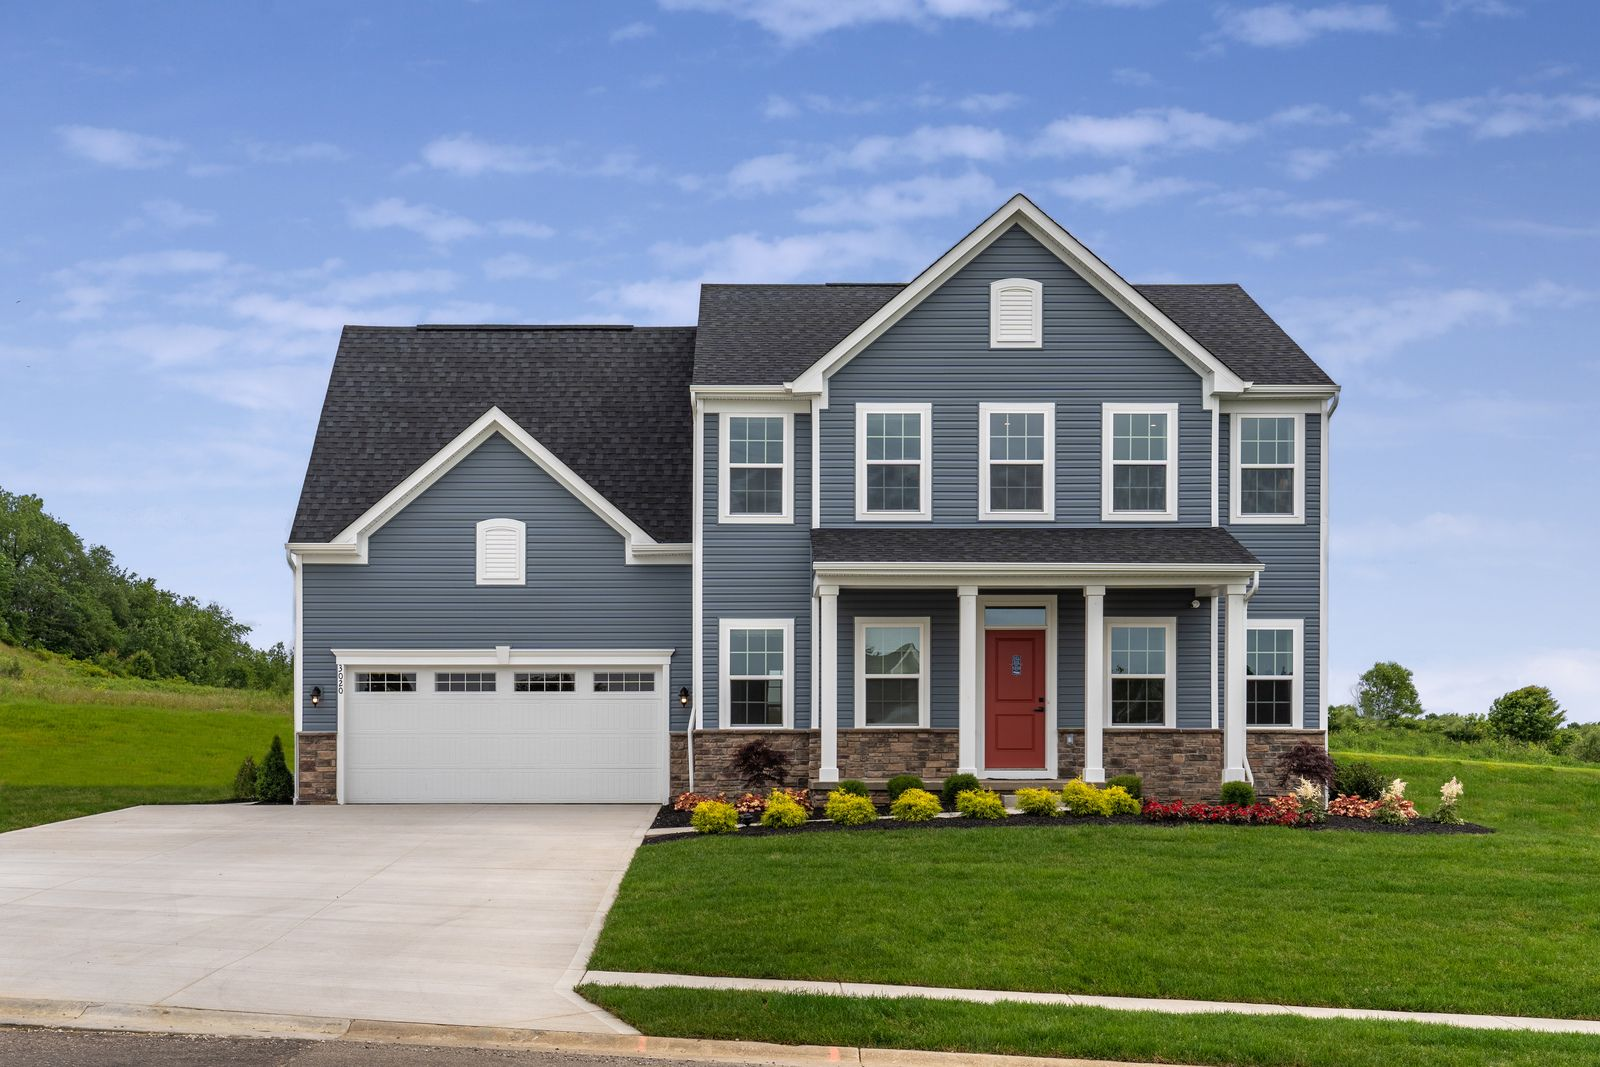 Welcome home to Autumn Ridge, New Homes in Lebanon Now Open:2 miles from Downtown Lebanon, minutes to I-75 and centrally located between Cincinnati and Dayton. Starting from the $290s.Click here to schedule your visit to Autumn Ridge!